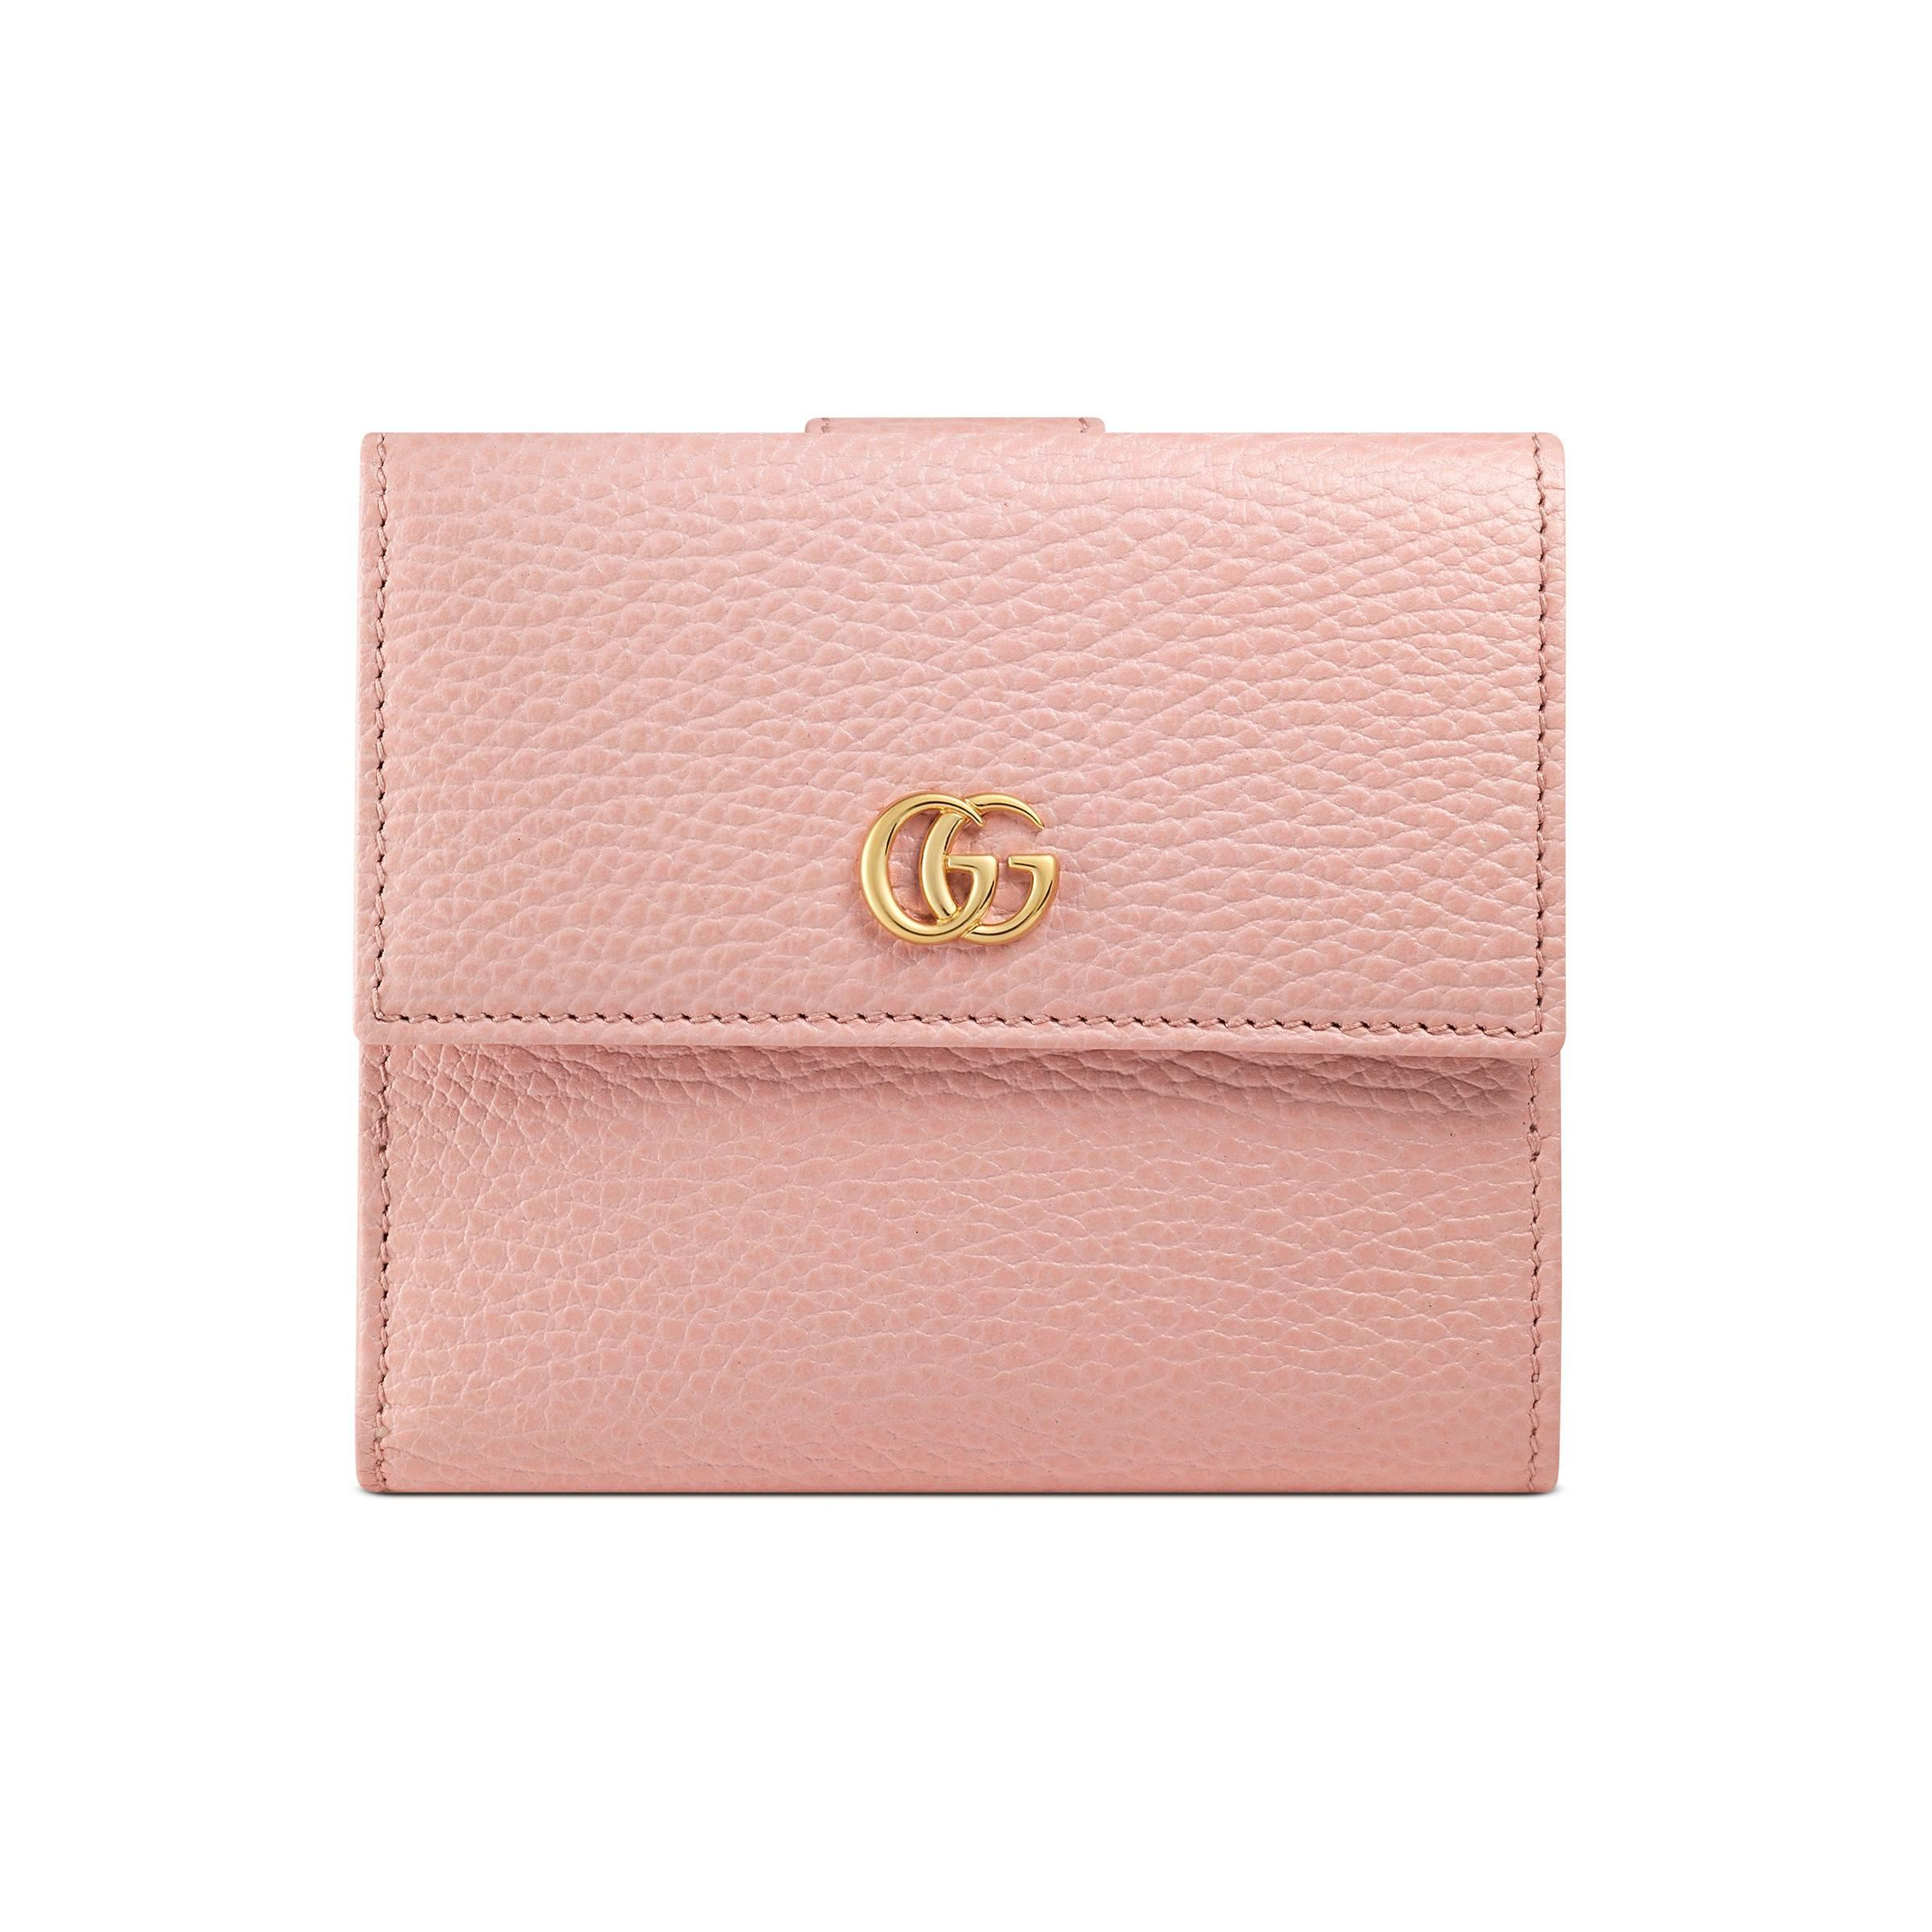 33bec23c1e3b1e Gucci Leather French Flap Wallet in Pink - Lyst